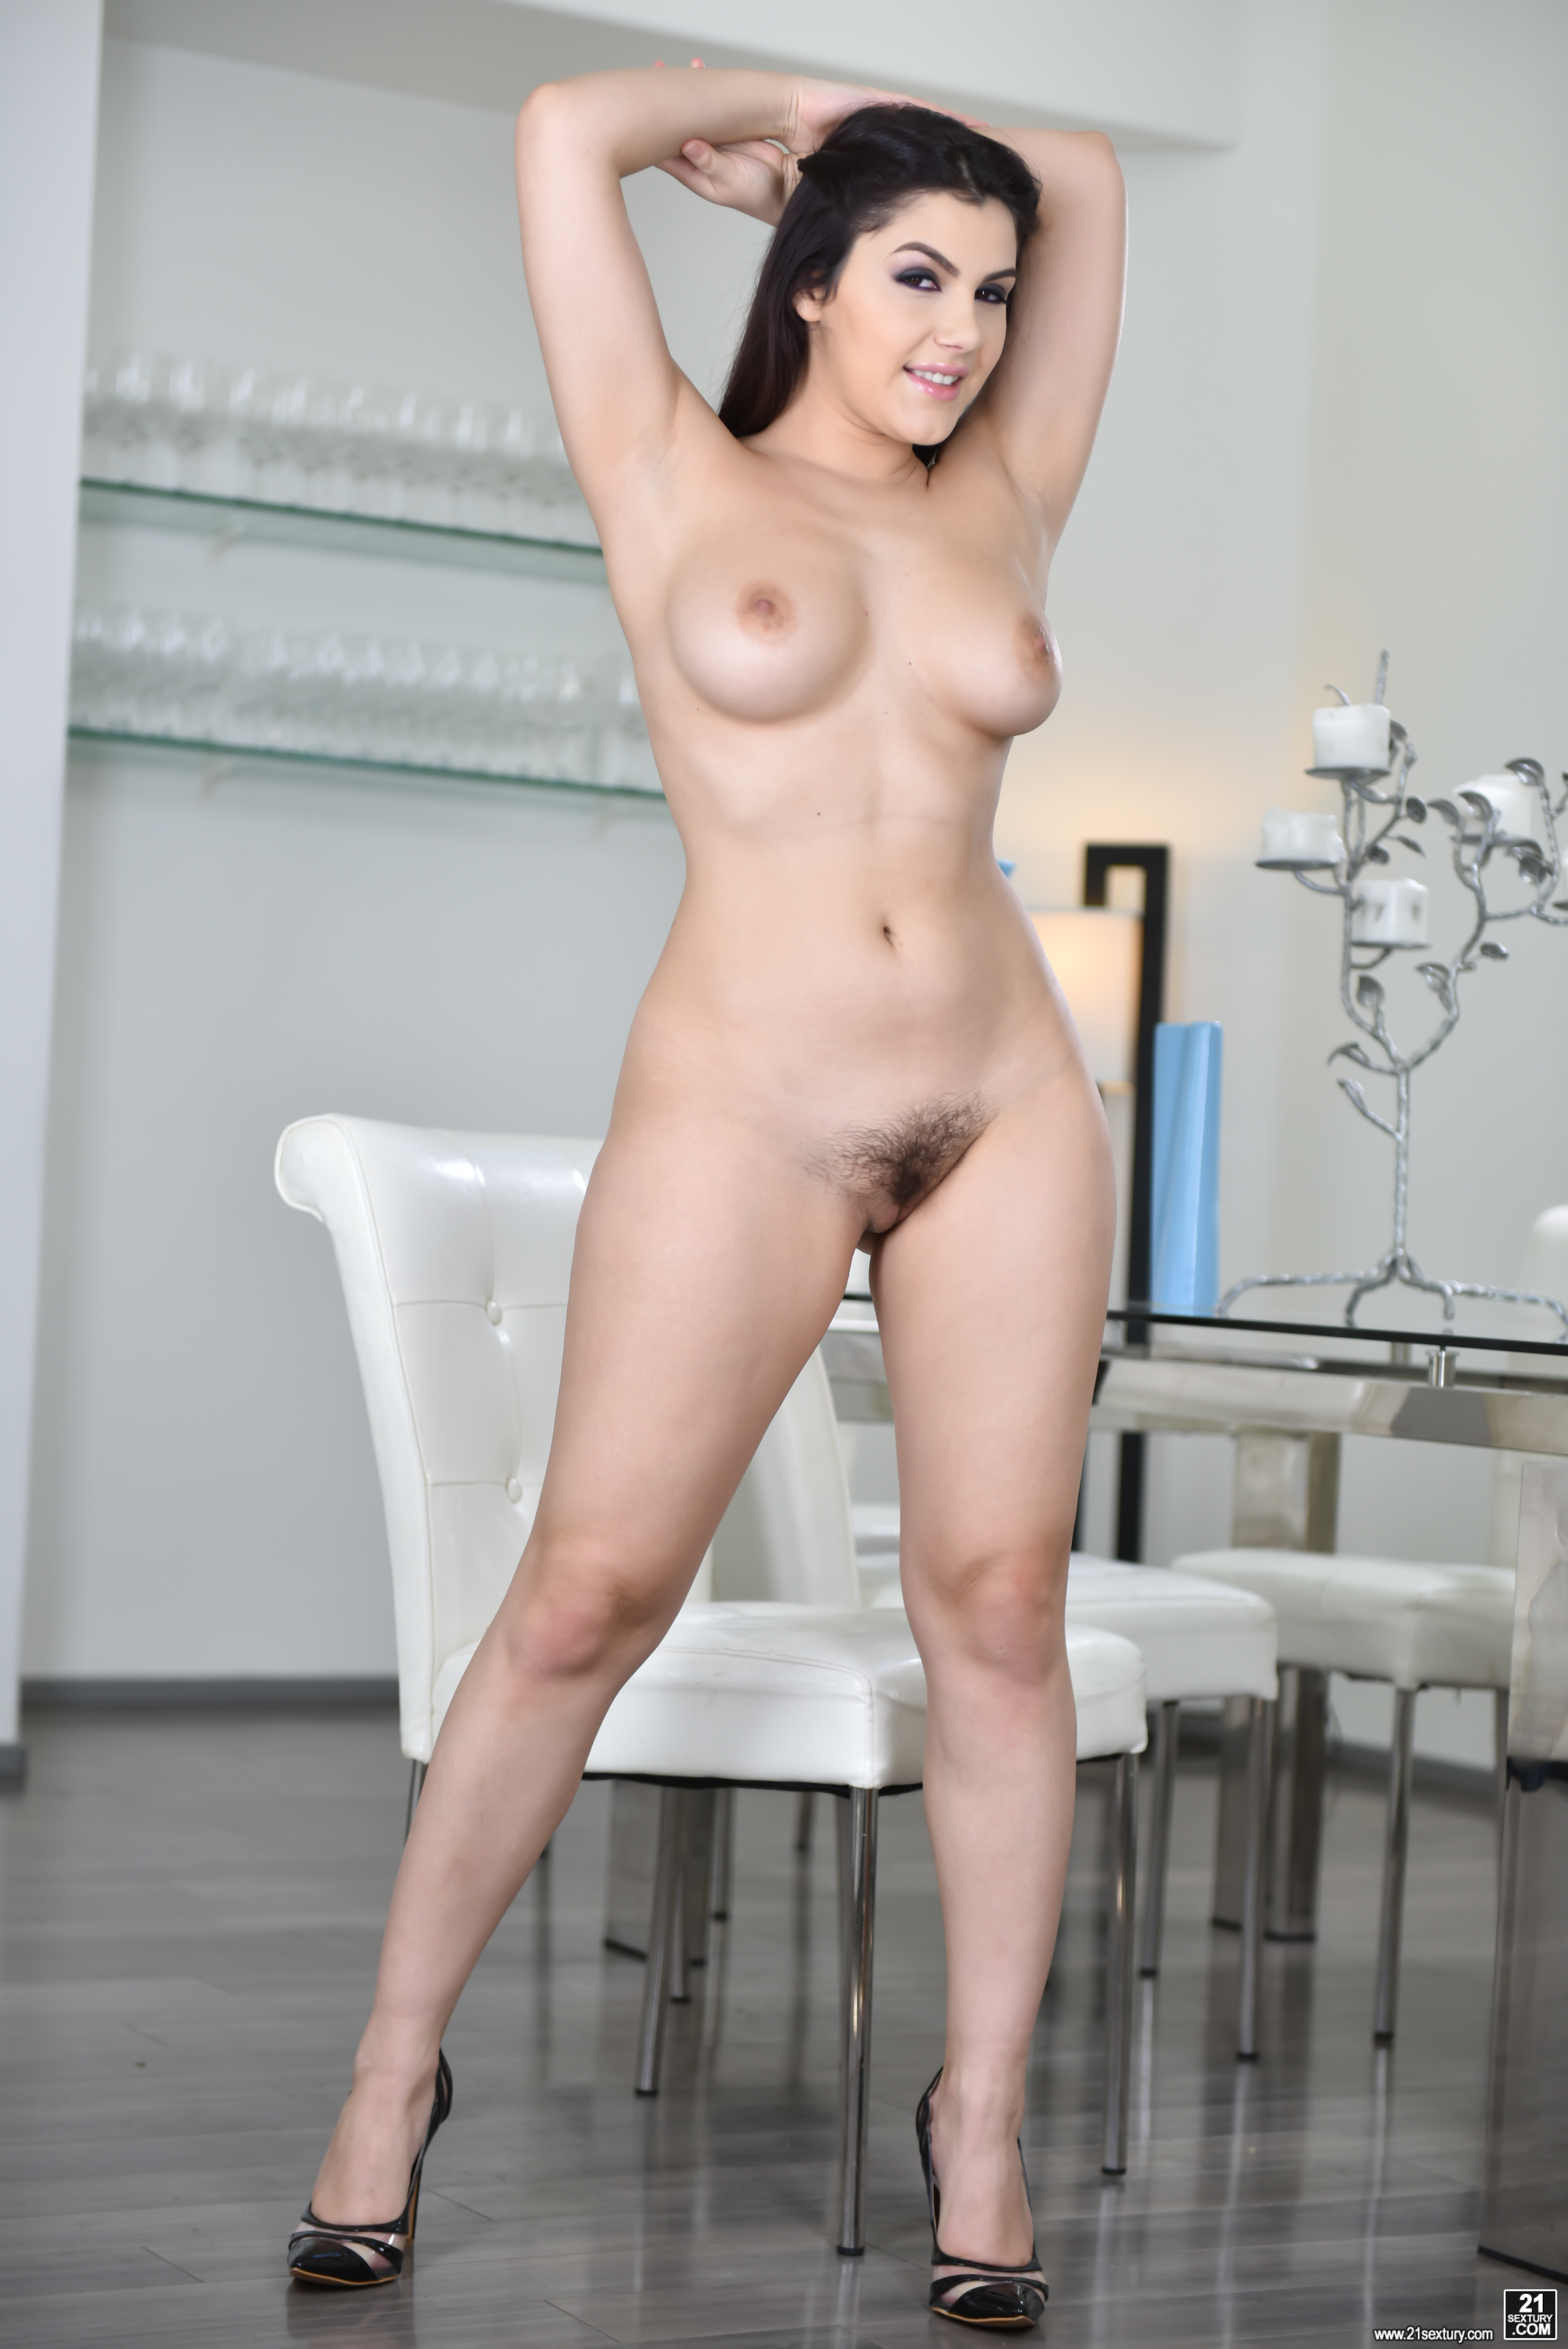 Brunch With Valentina Nappi Sexy Gallery Full Photo Sexyandfunny Com